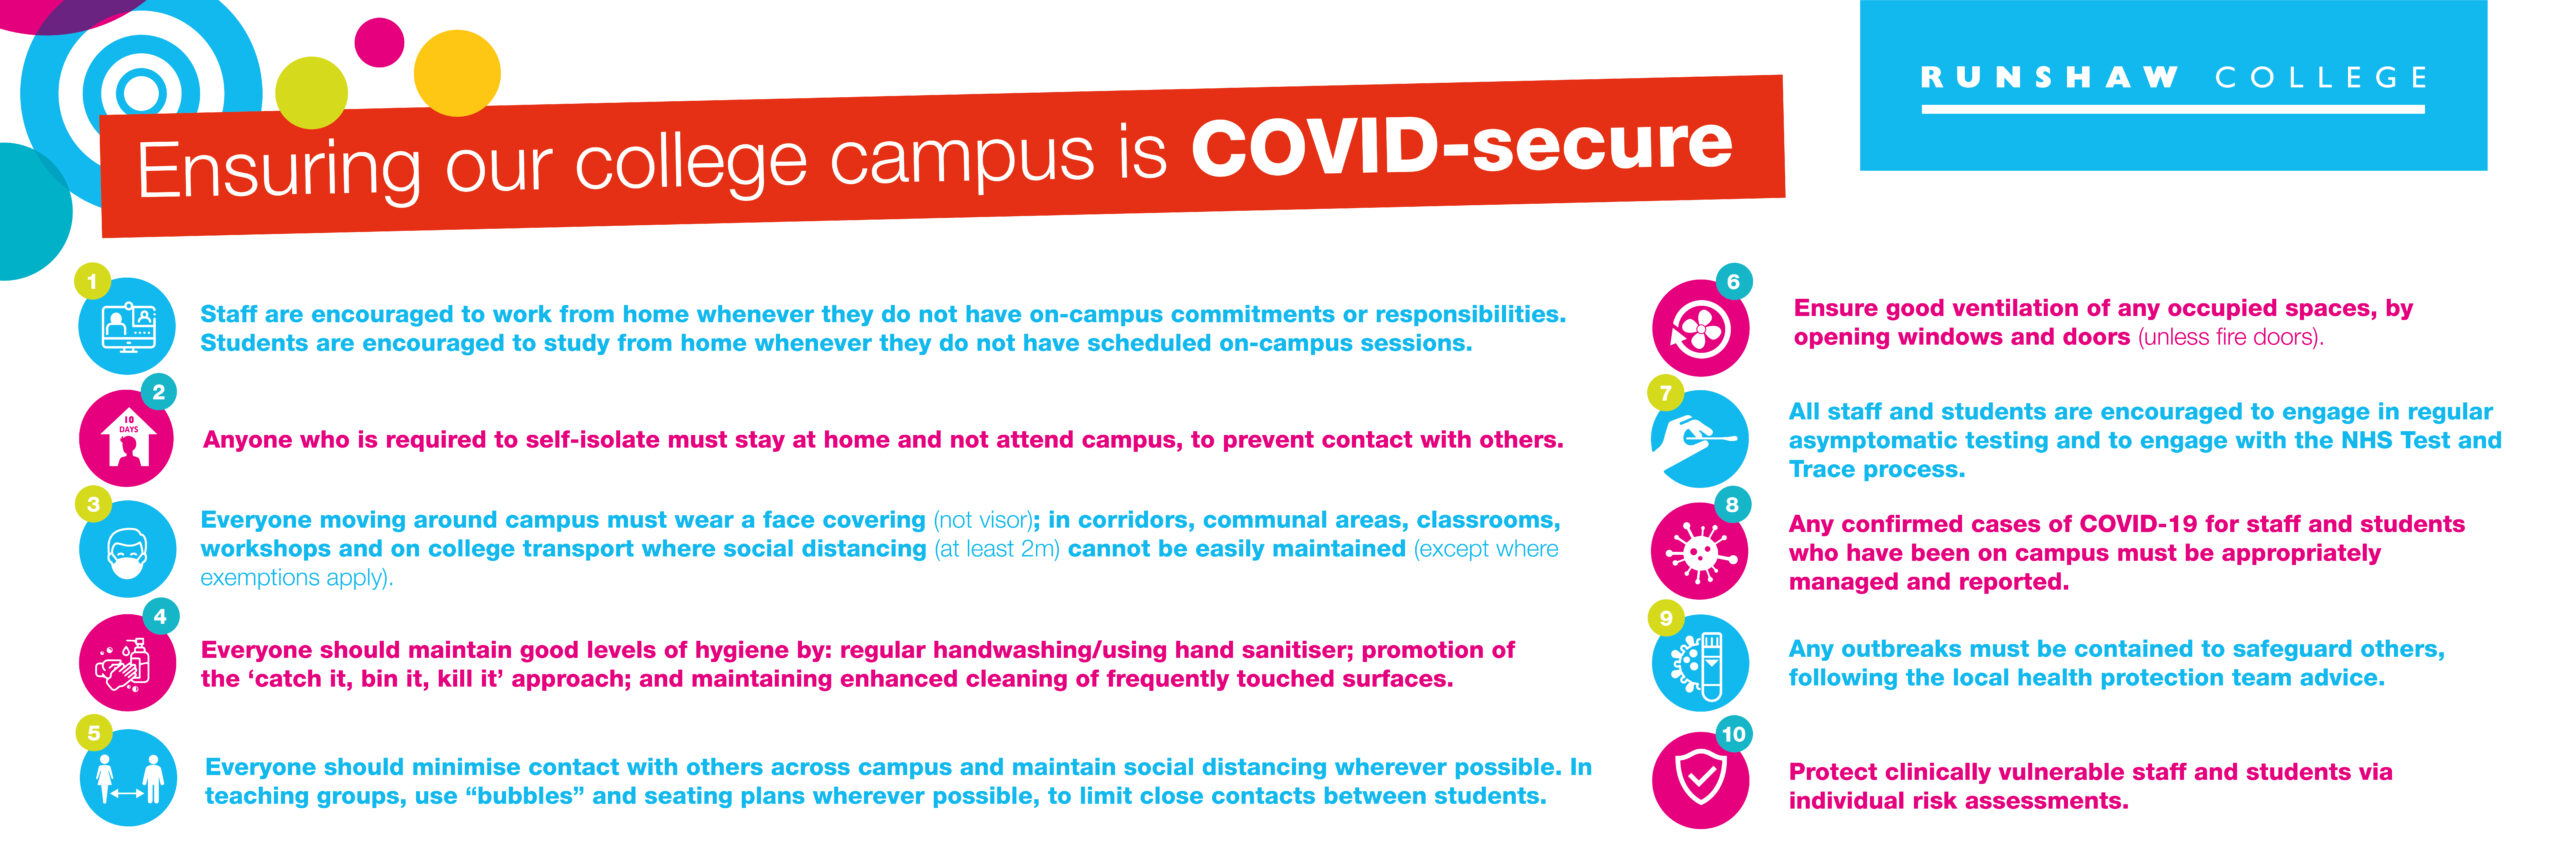 Ensuring our college campus is COVID Secure. 10 key controls.